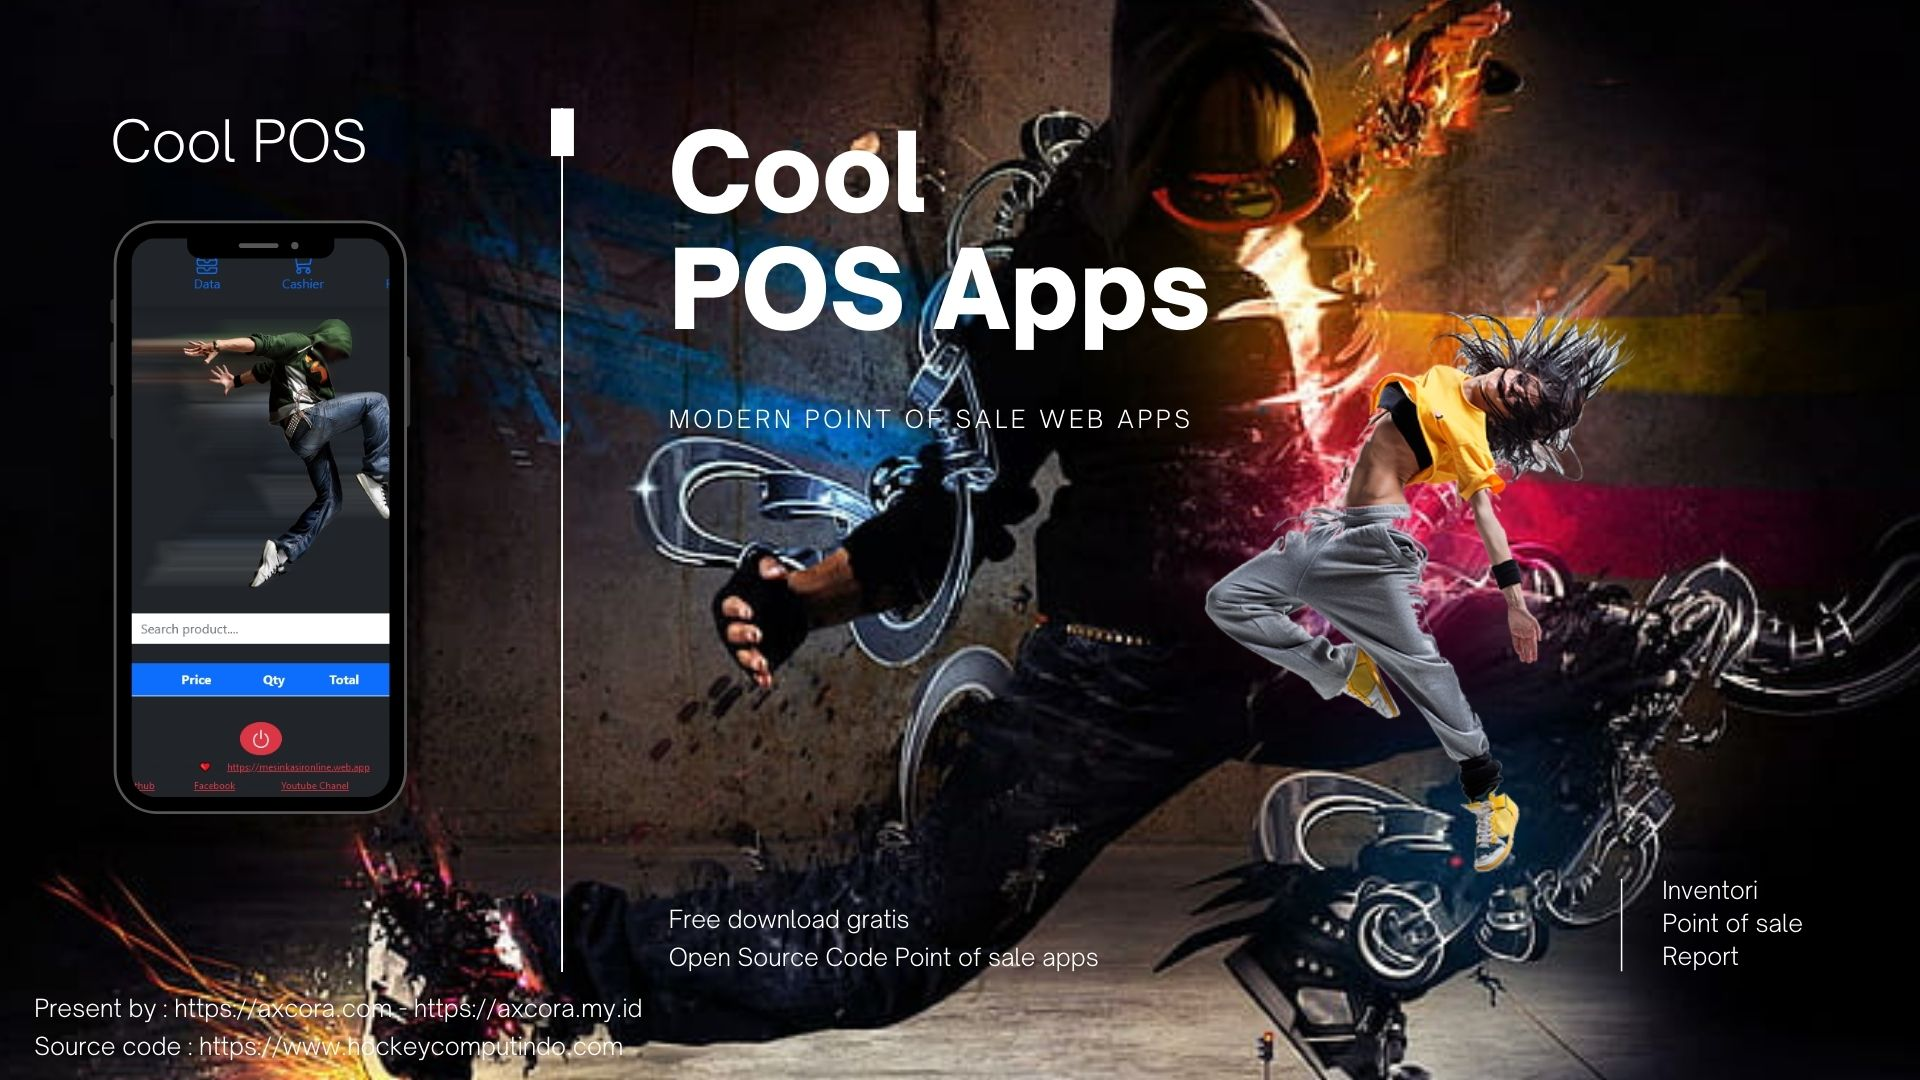 new source code point of sale cool pos free download gratis